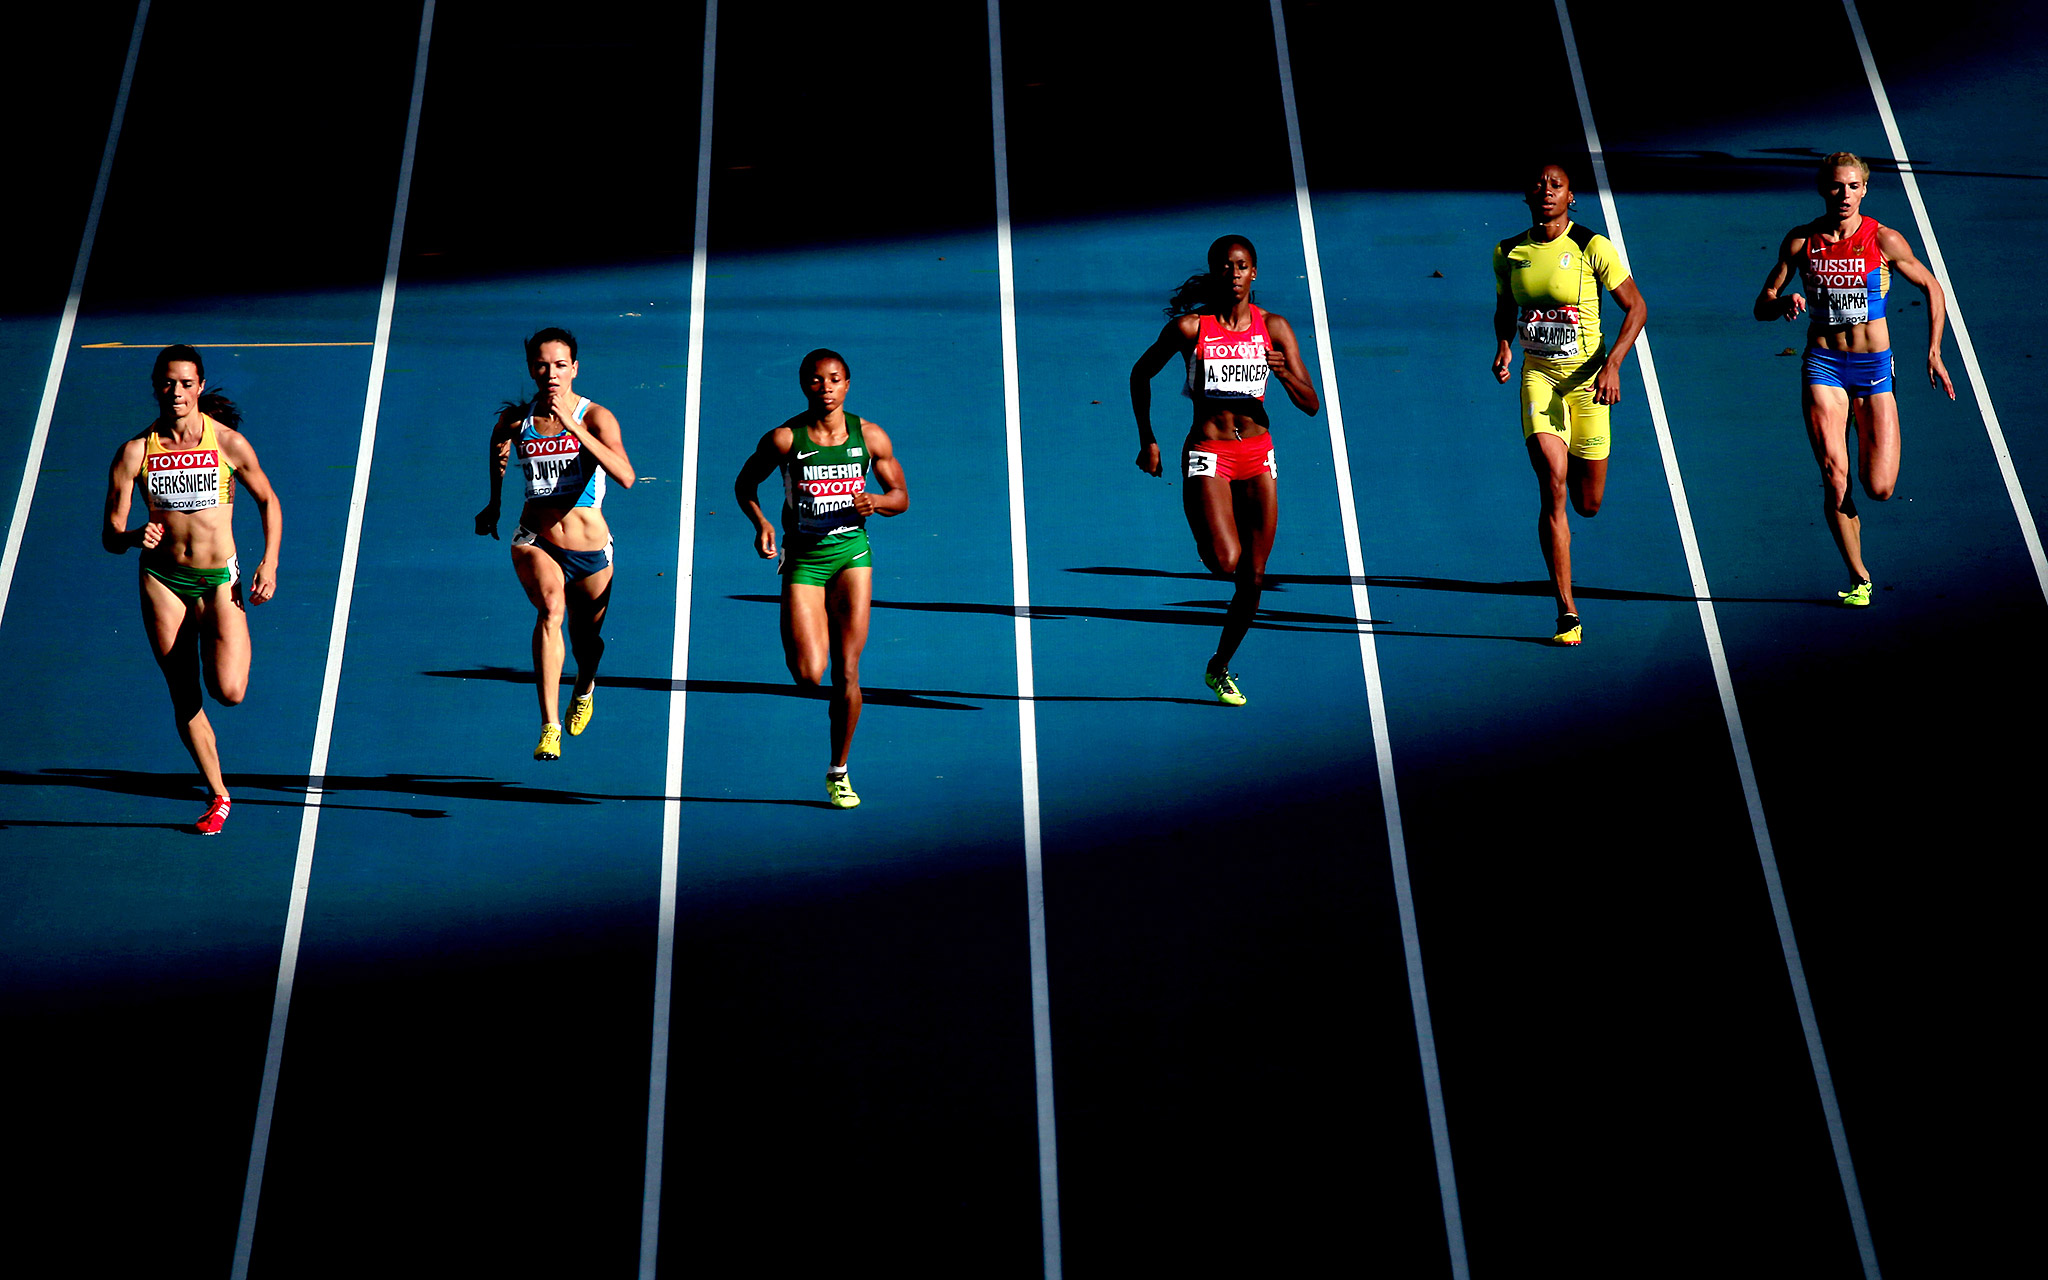 Track & Field World Championships